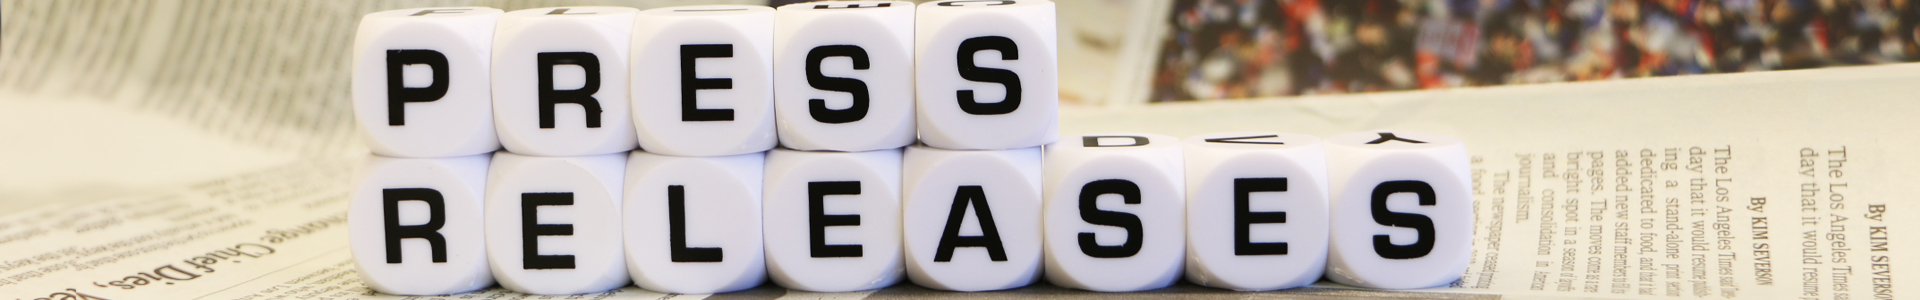 cubes with press release letters on top